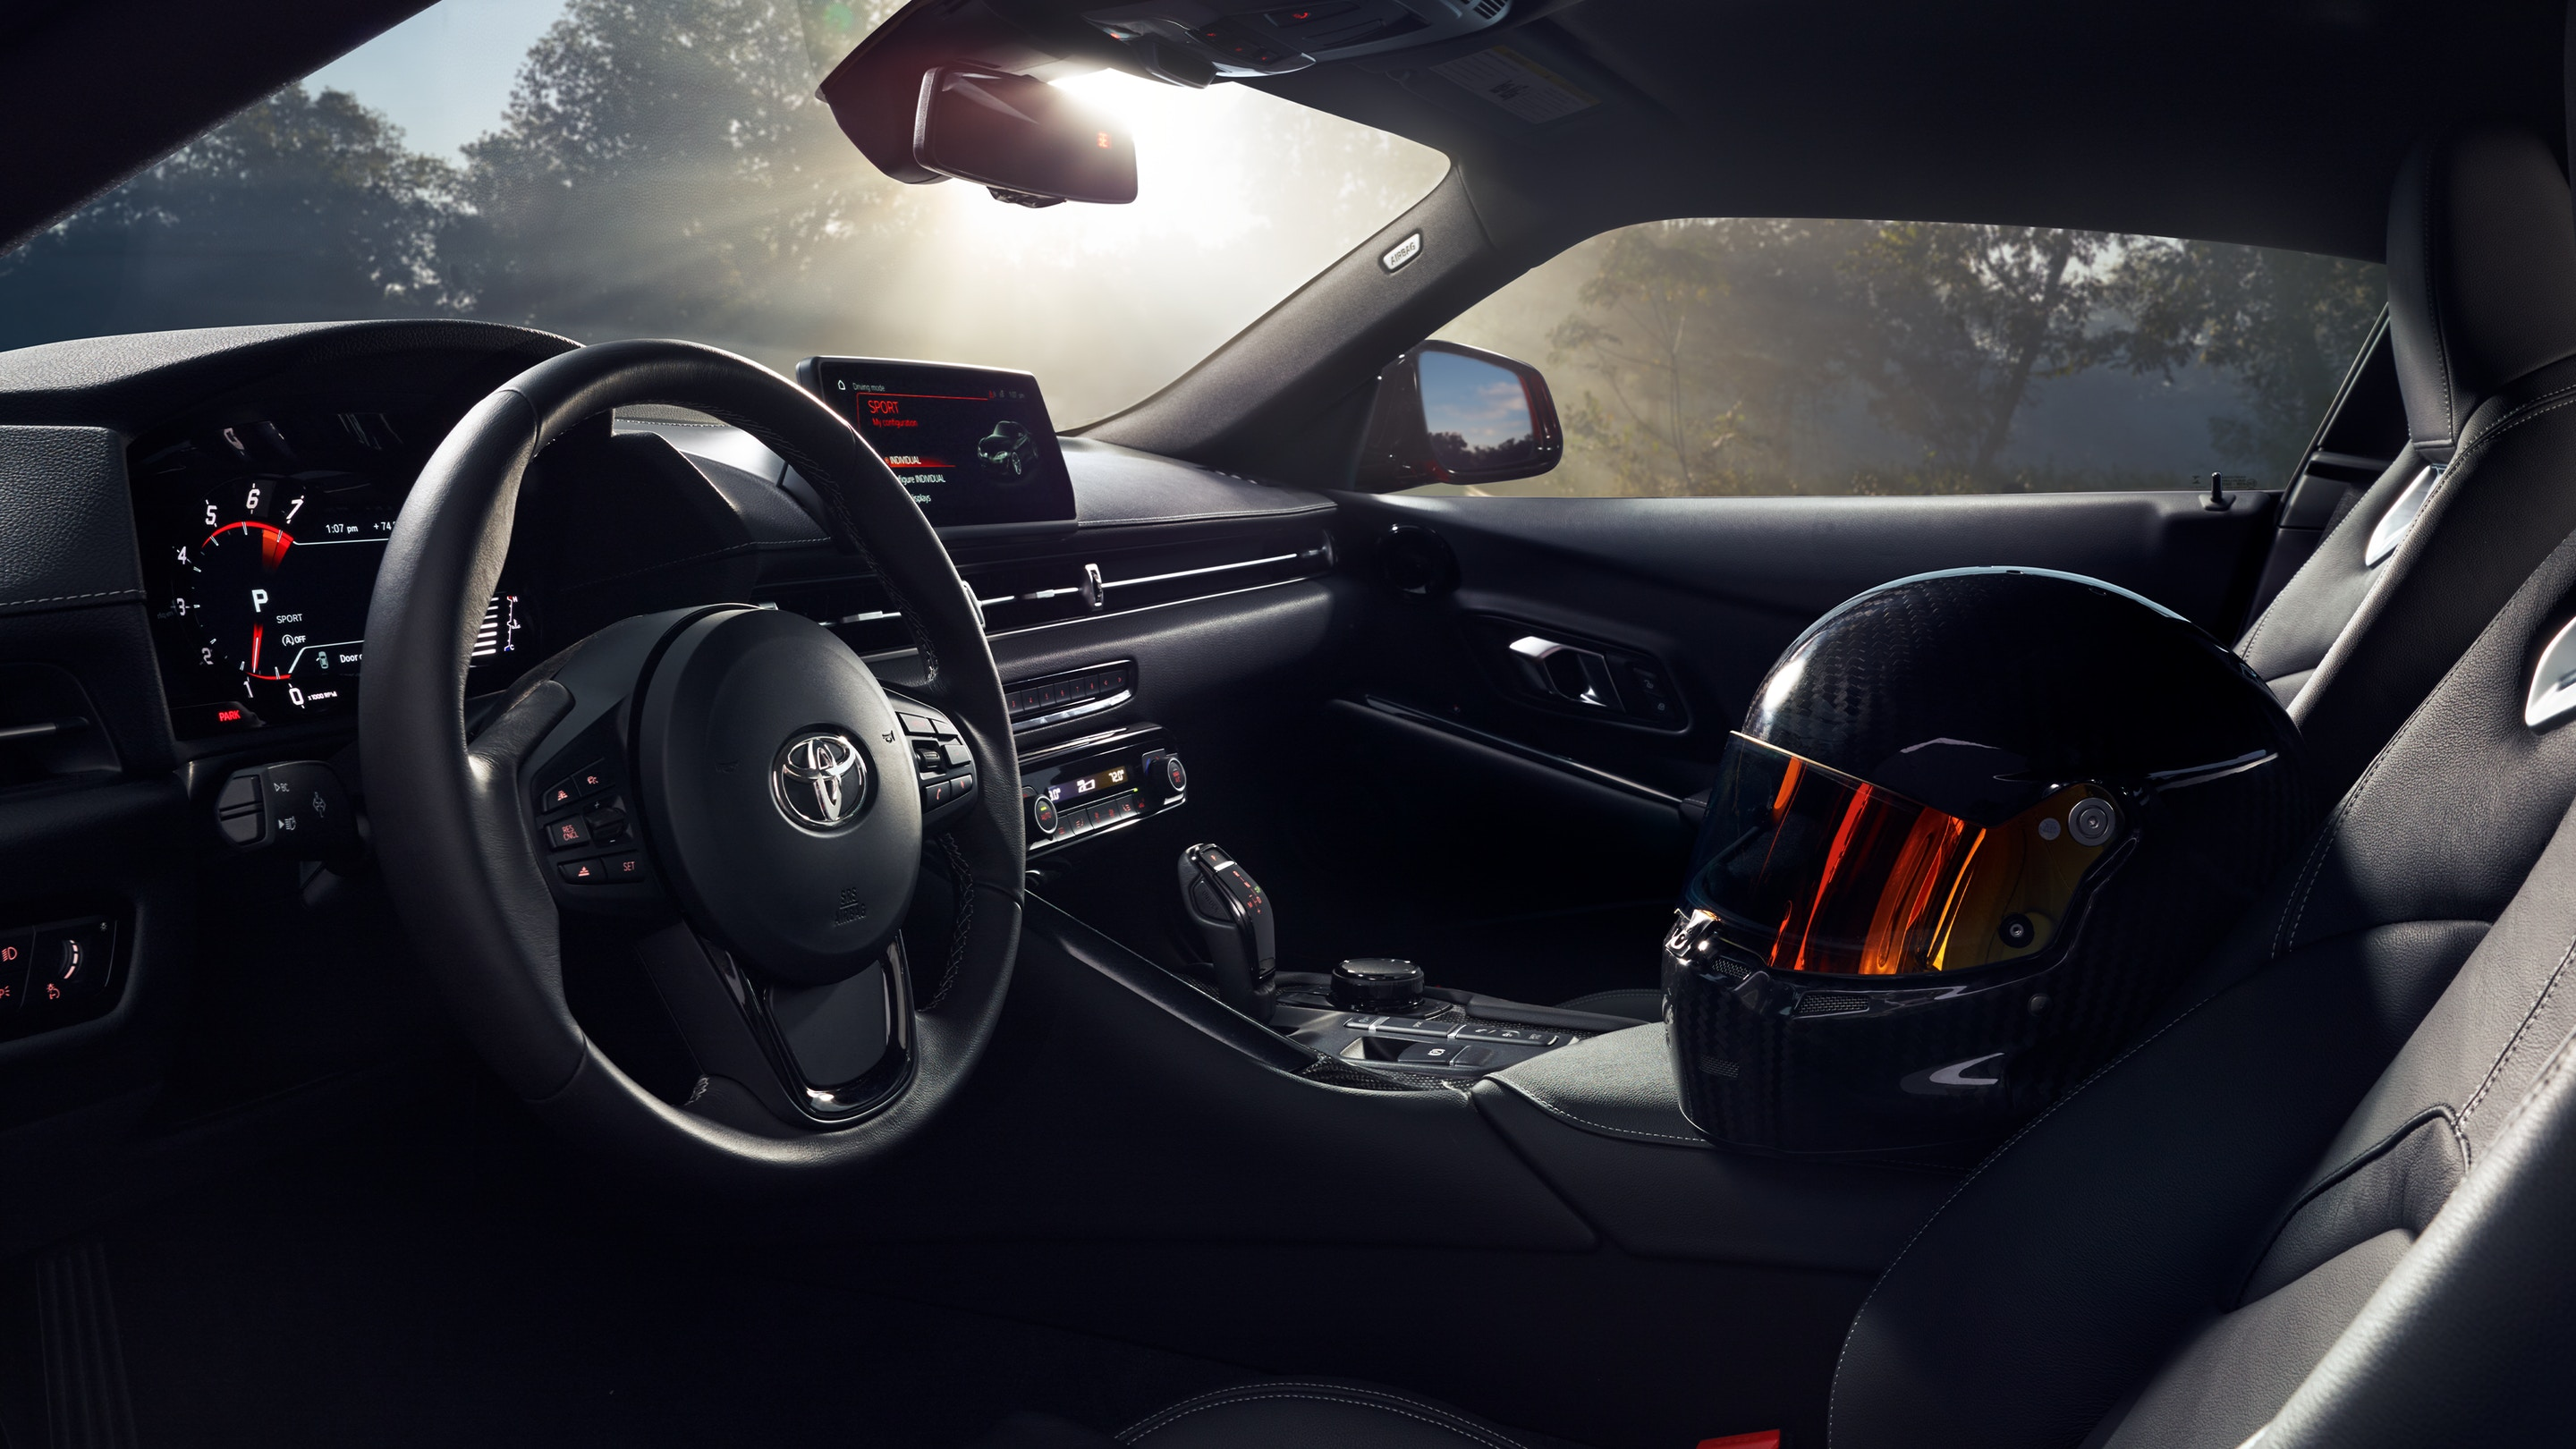 Interior of the 2020 Supra